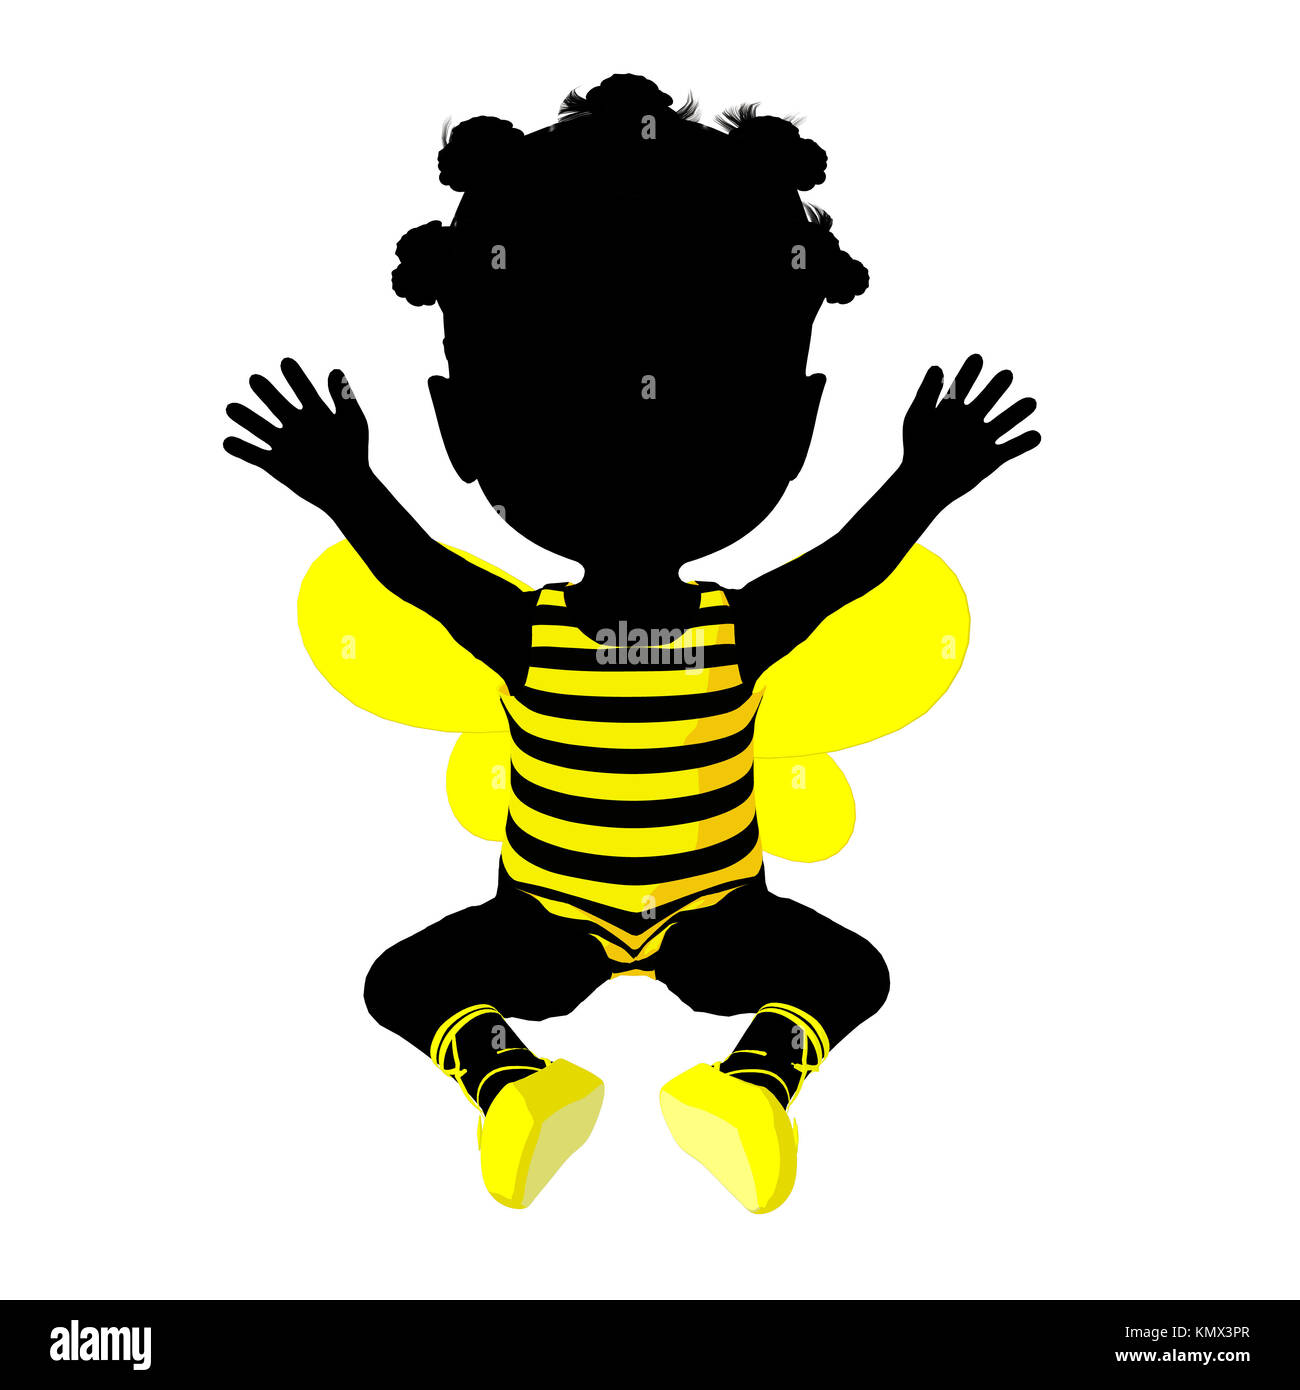 American bumble bee stock photos american bumble bee stock little african american bumble bee girl on a white background stock image biocorpaavc